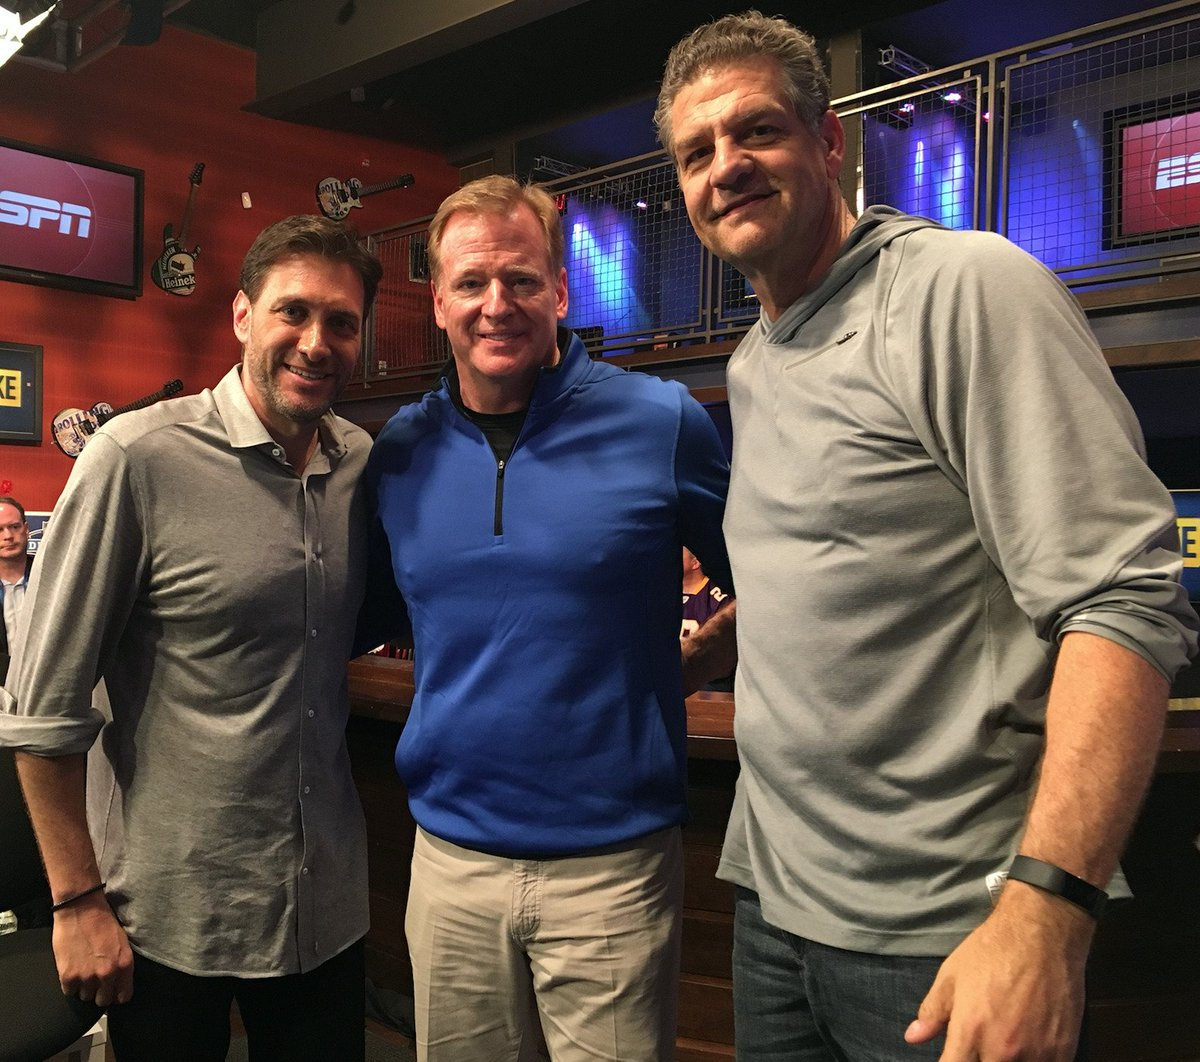 MikeAndMike photo